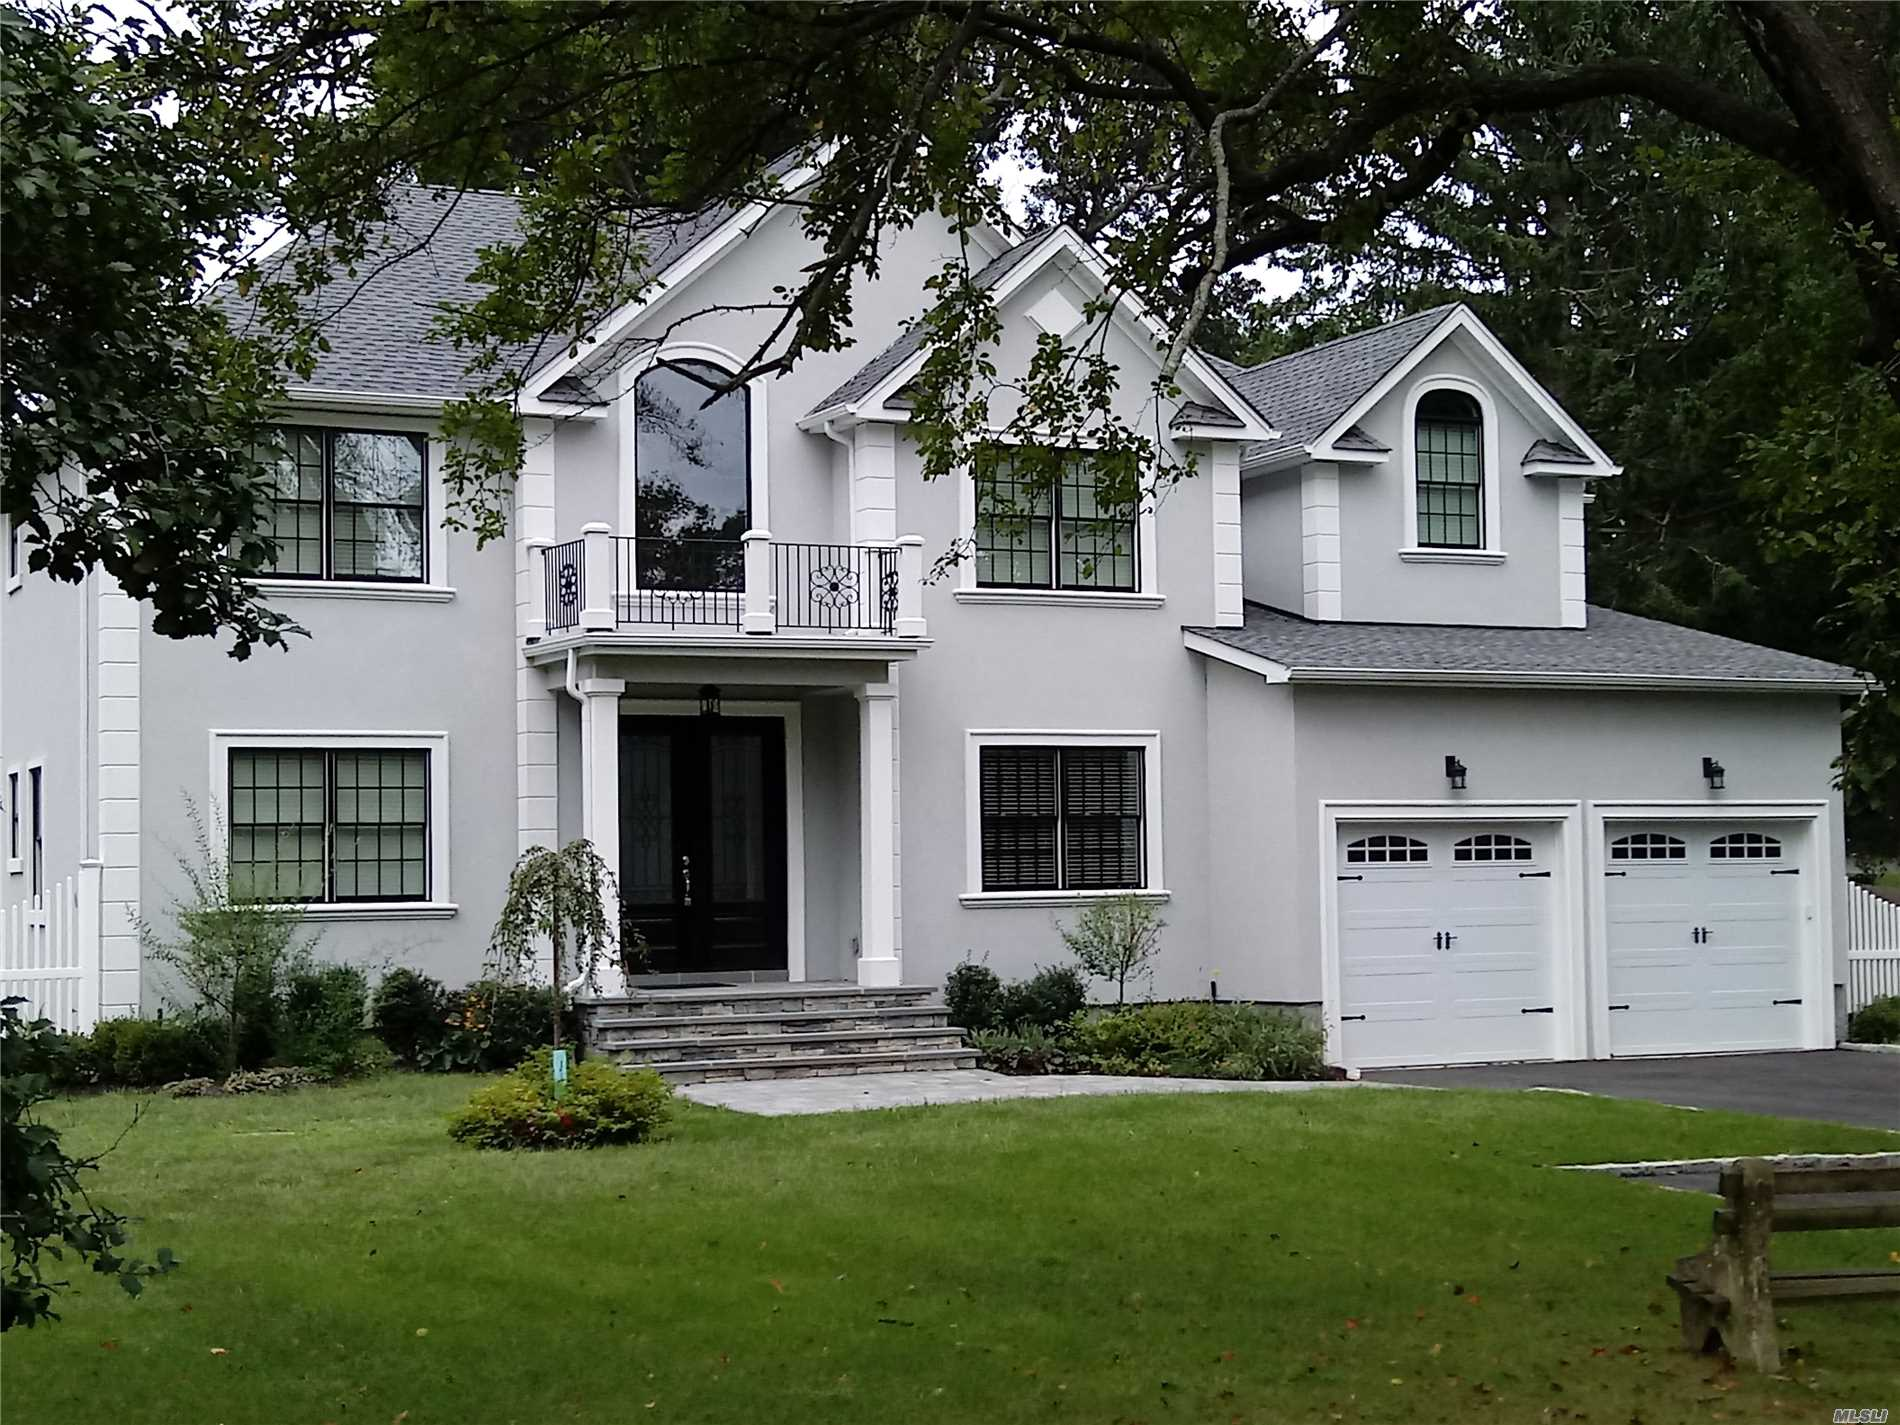 Dramatic Price Adjustment !! 2 Home Subdivision See Mls 3028611 . Suburbia At Its Finest . Each Magnificent Offering On 2.77 Acres . 5 Bedroom Colonial . Builder's Delight . Amenities Abound In This Premier Listing . Unfinished Basement With Outside Entrance And 9Ft Ceilings . Home Is On New Road Off Of 67 Sunken Meadow Road . This Is Long Island At Its Finest . Gps 67 Sunken Meadow Road